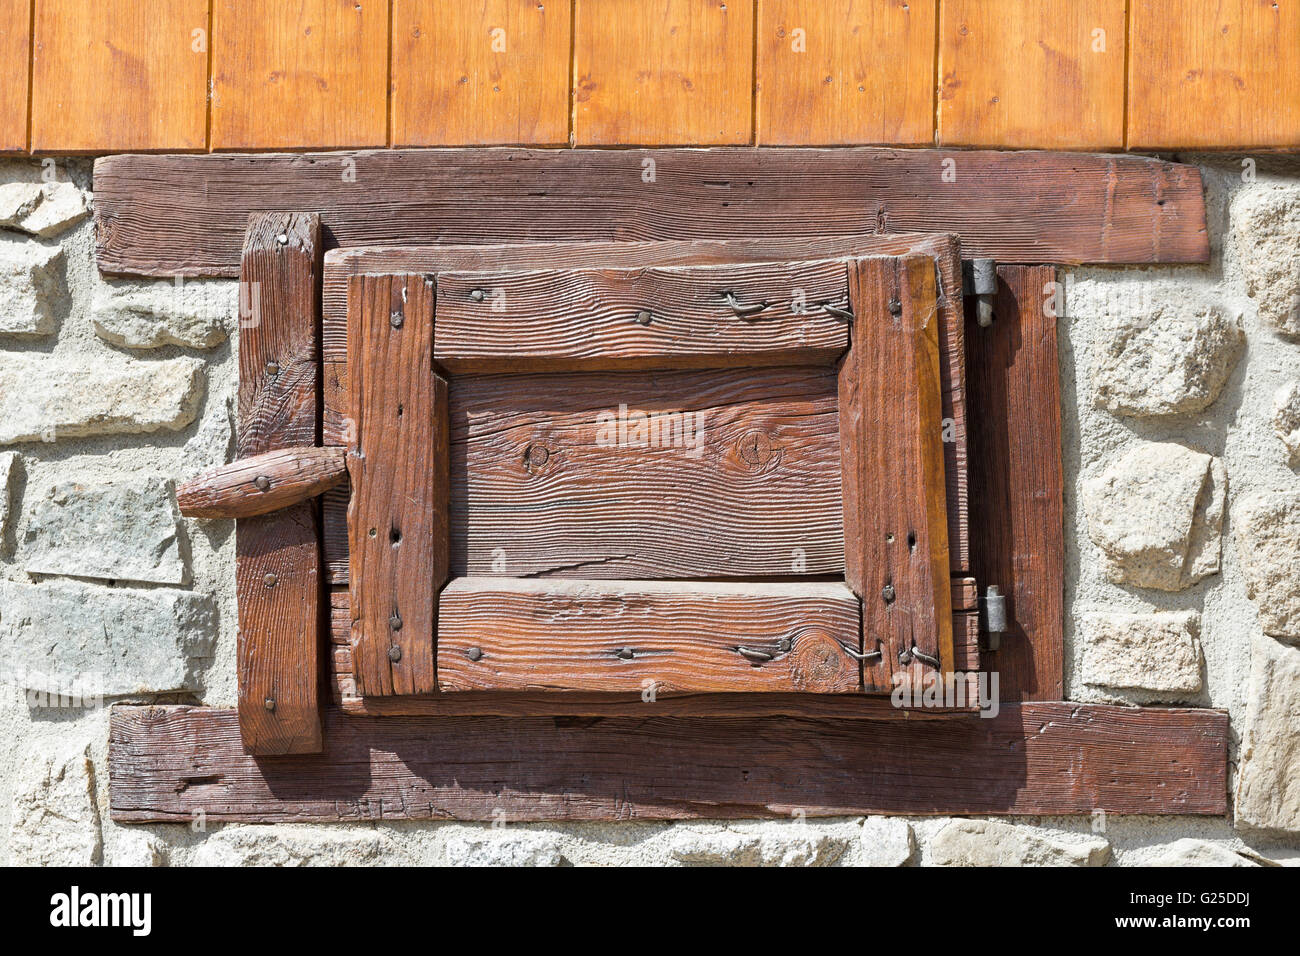 old wooden windows, typical of the stables - Stock Image